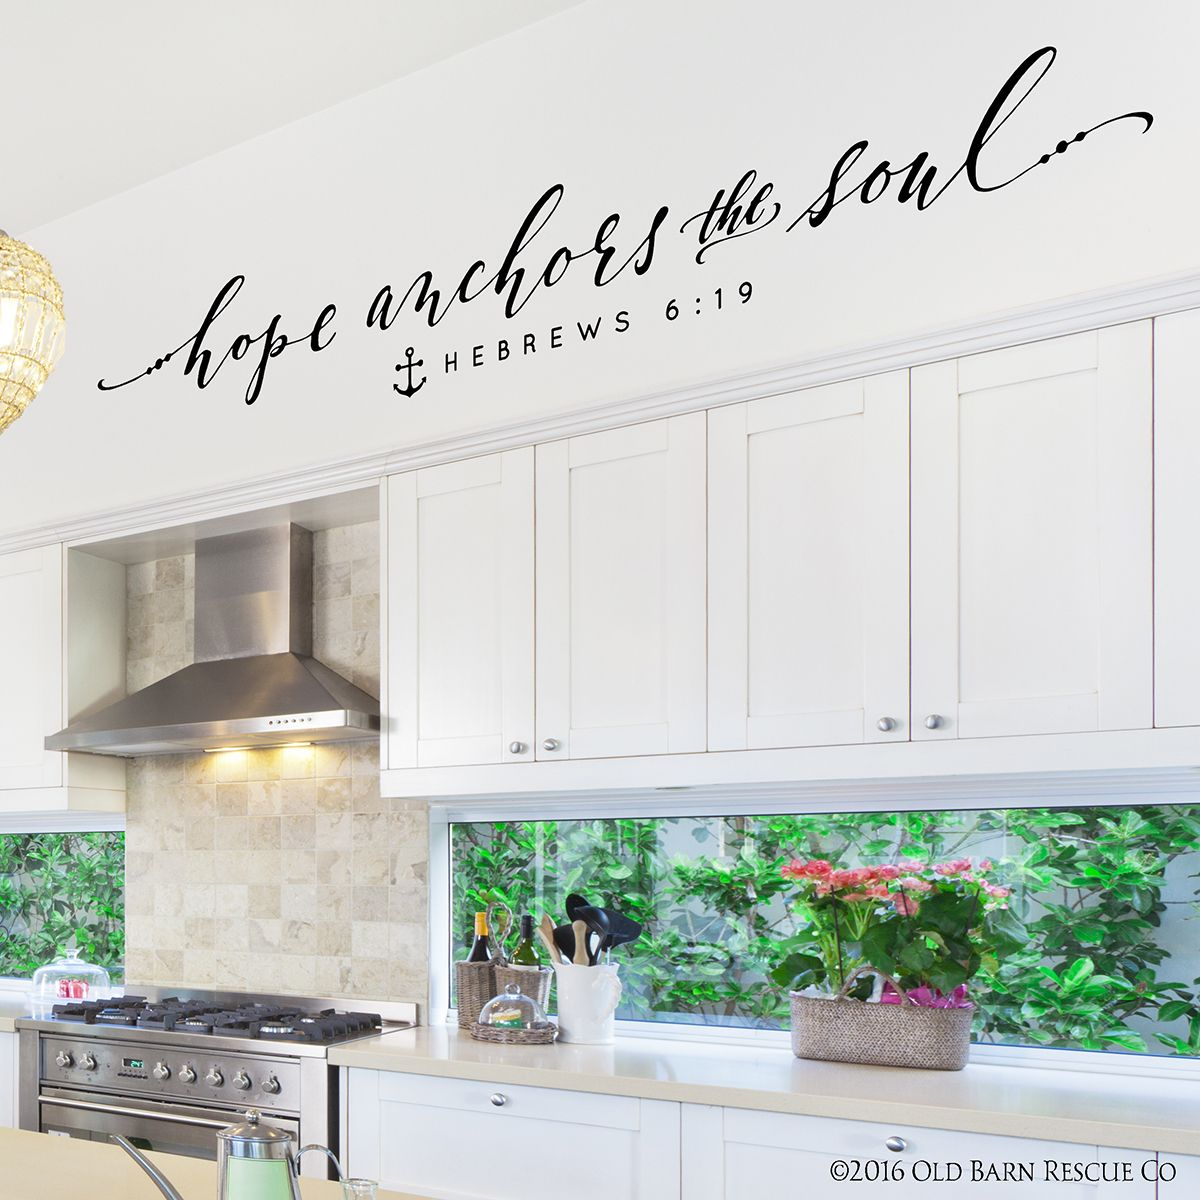 Inspiring bible quotes hope anchors the soul wall decal wall inspiring bible quotes hope anchors the soul wall decal amipublicfo Image collections